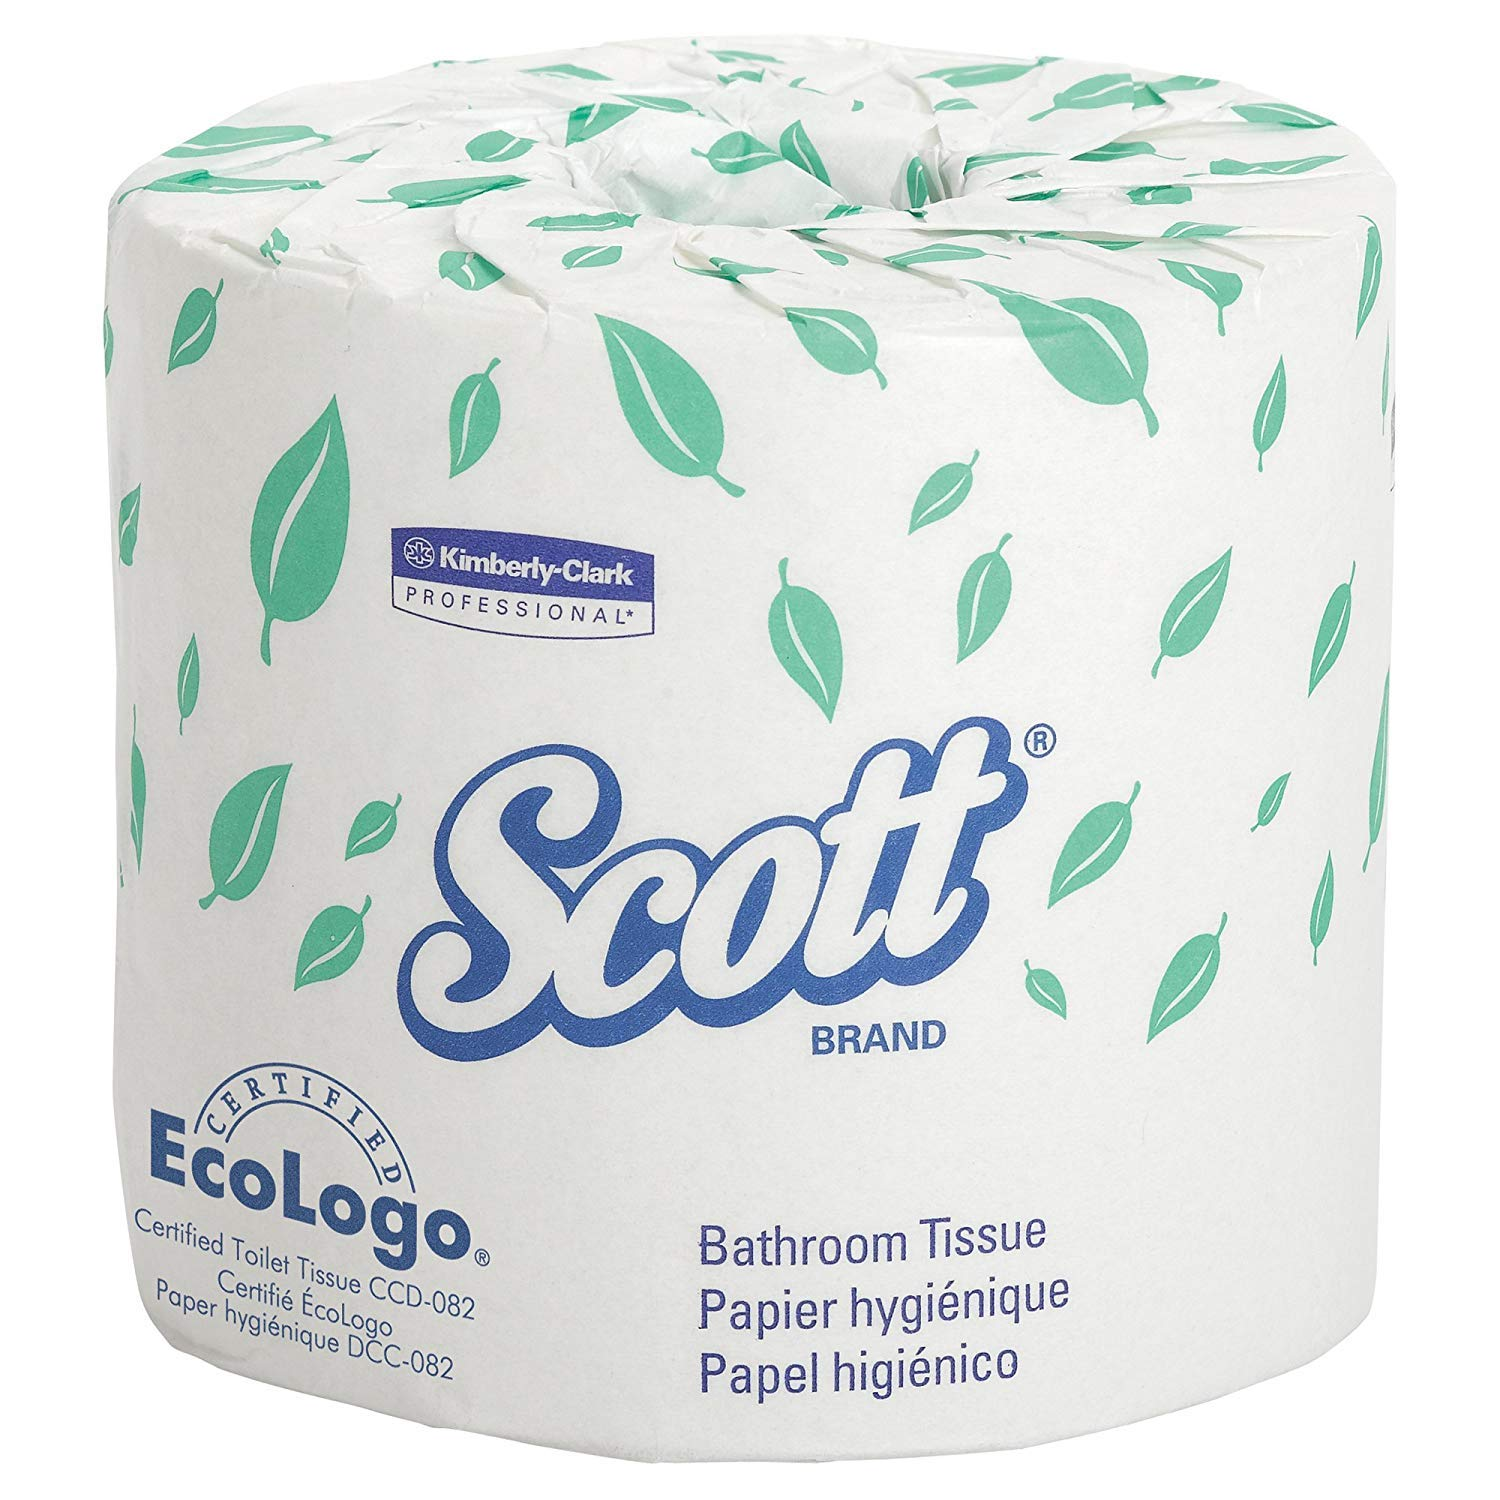 Scott Essential Professional Bulk Toilet Paper for Business (04460), Individually Wrapped Standard Rolls, 2-PLY, White, 80 Rolls/Case, 550 Sheets/Roll (Limited Edition)